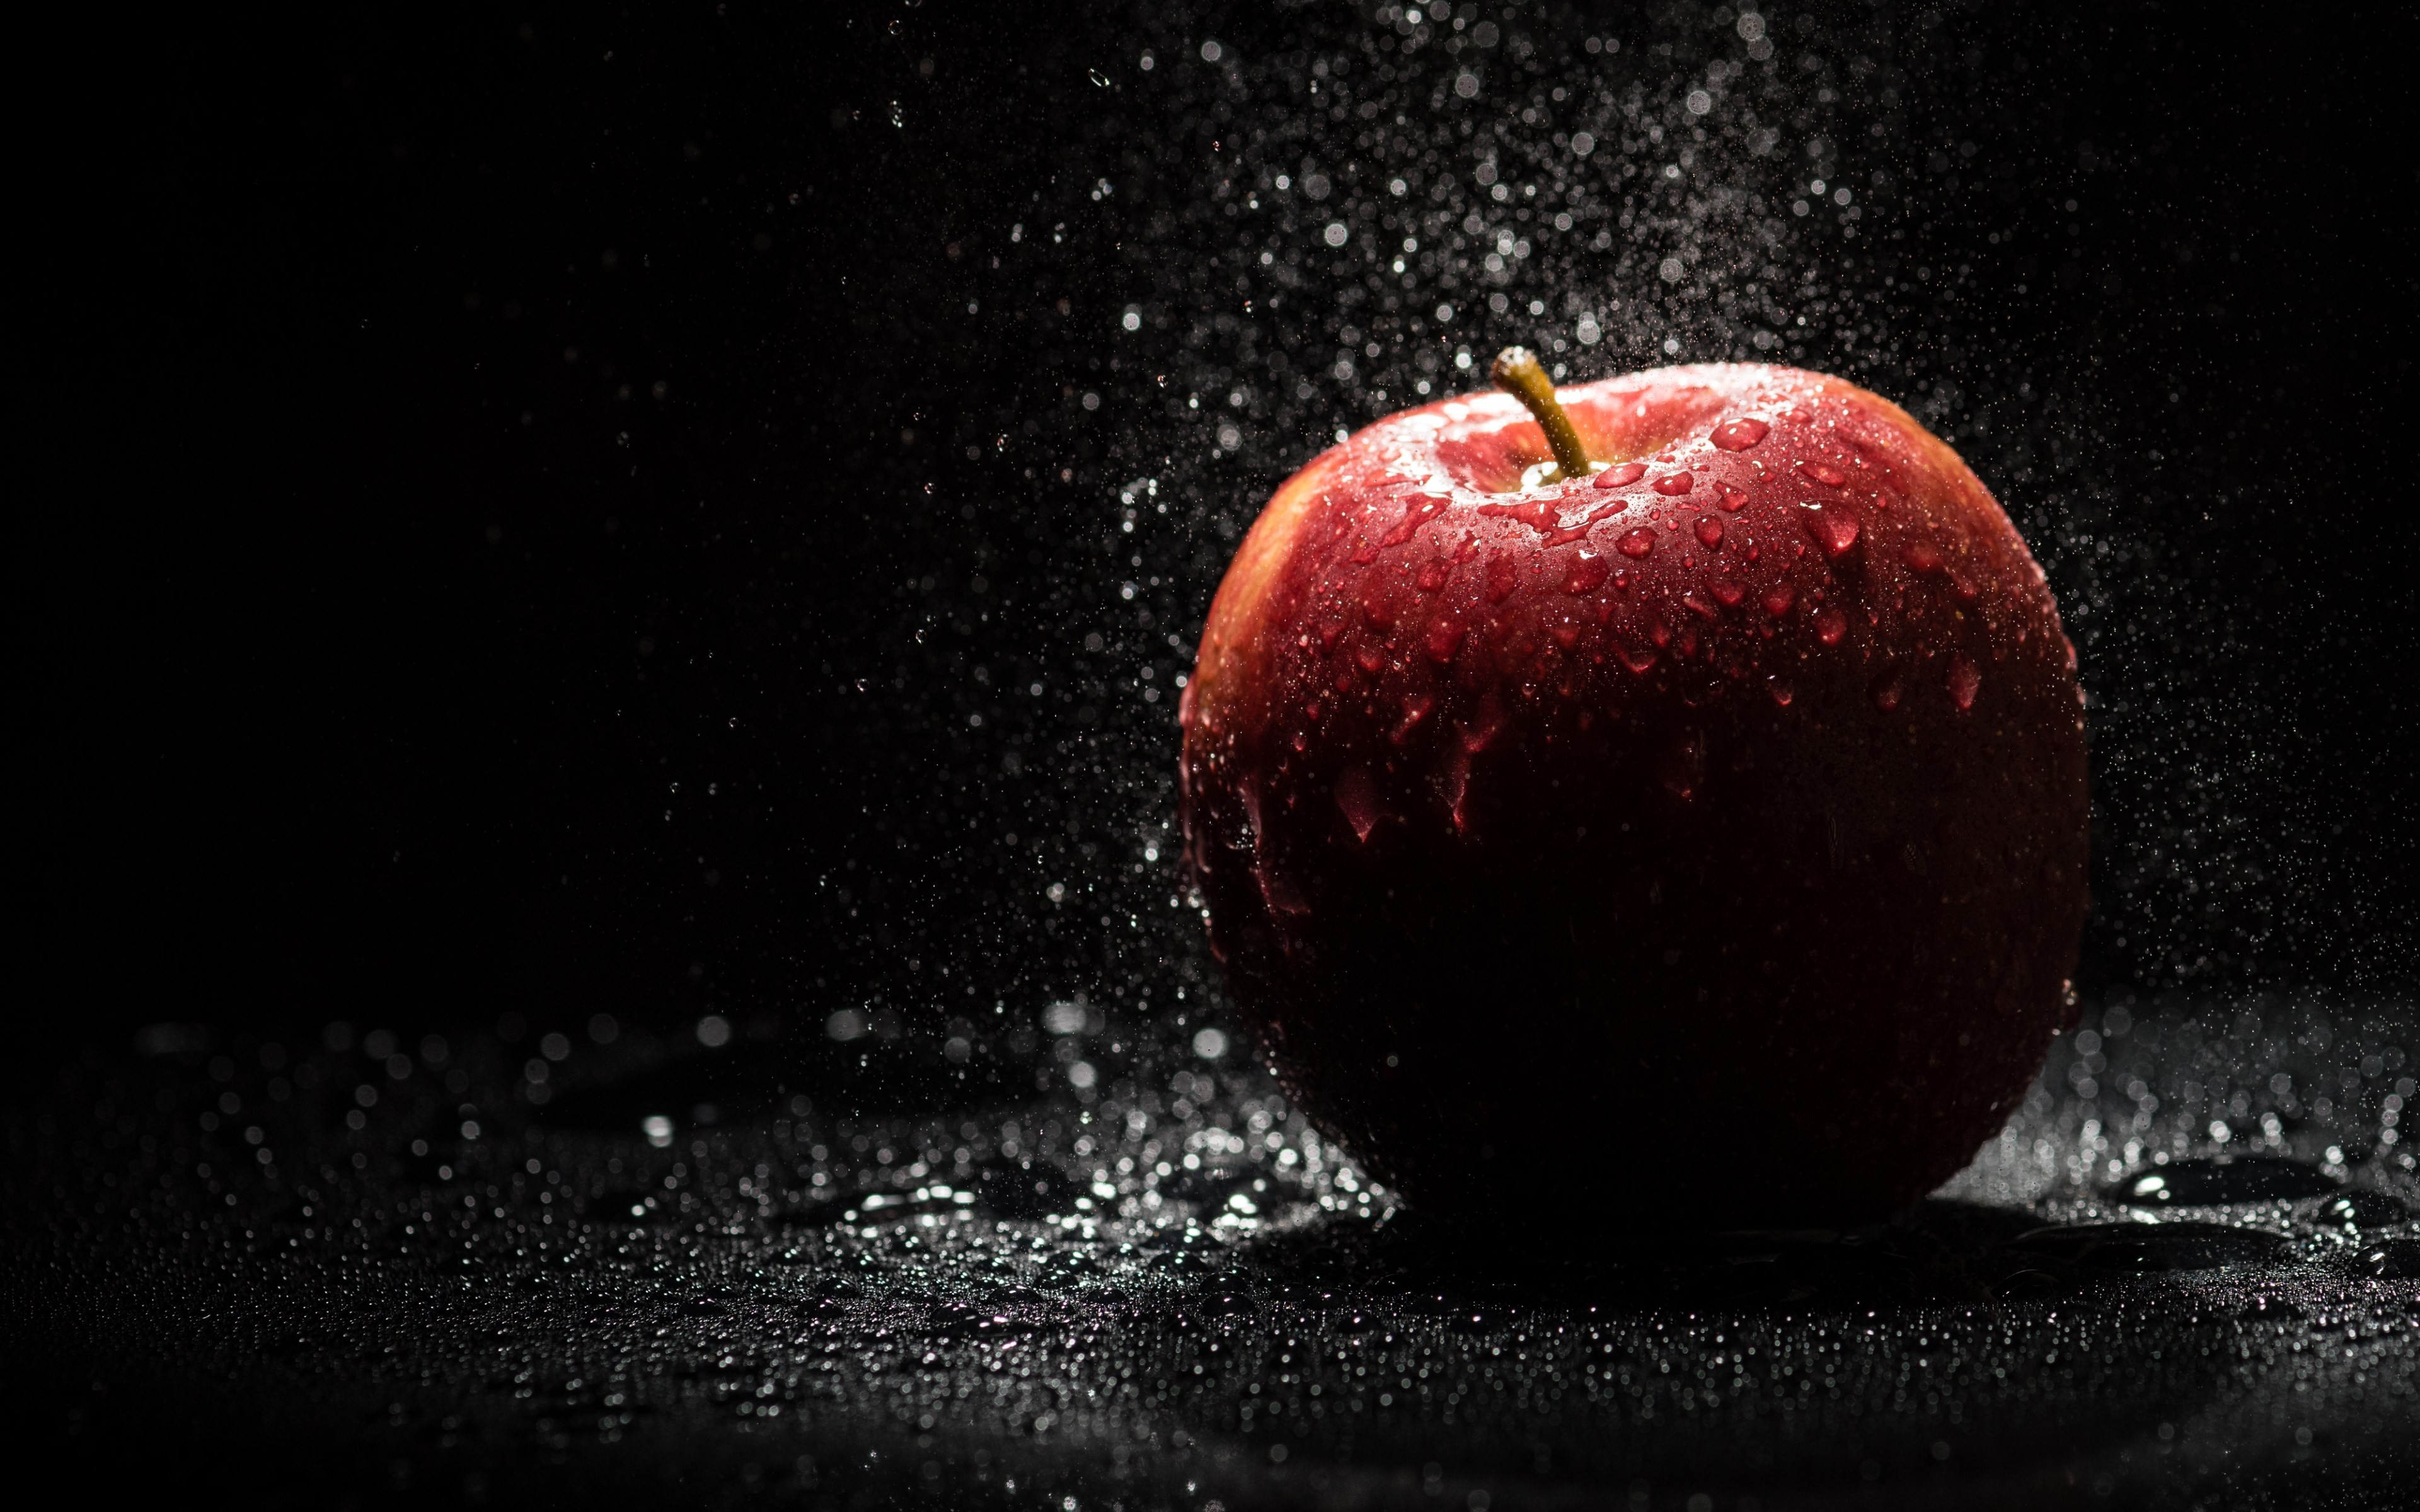 The apple, natural red apple wallpaper 3840x2400